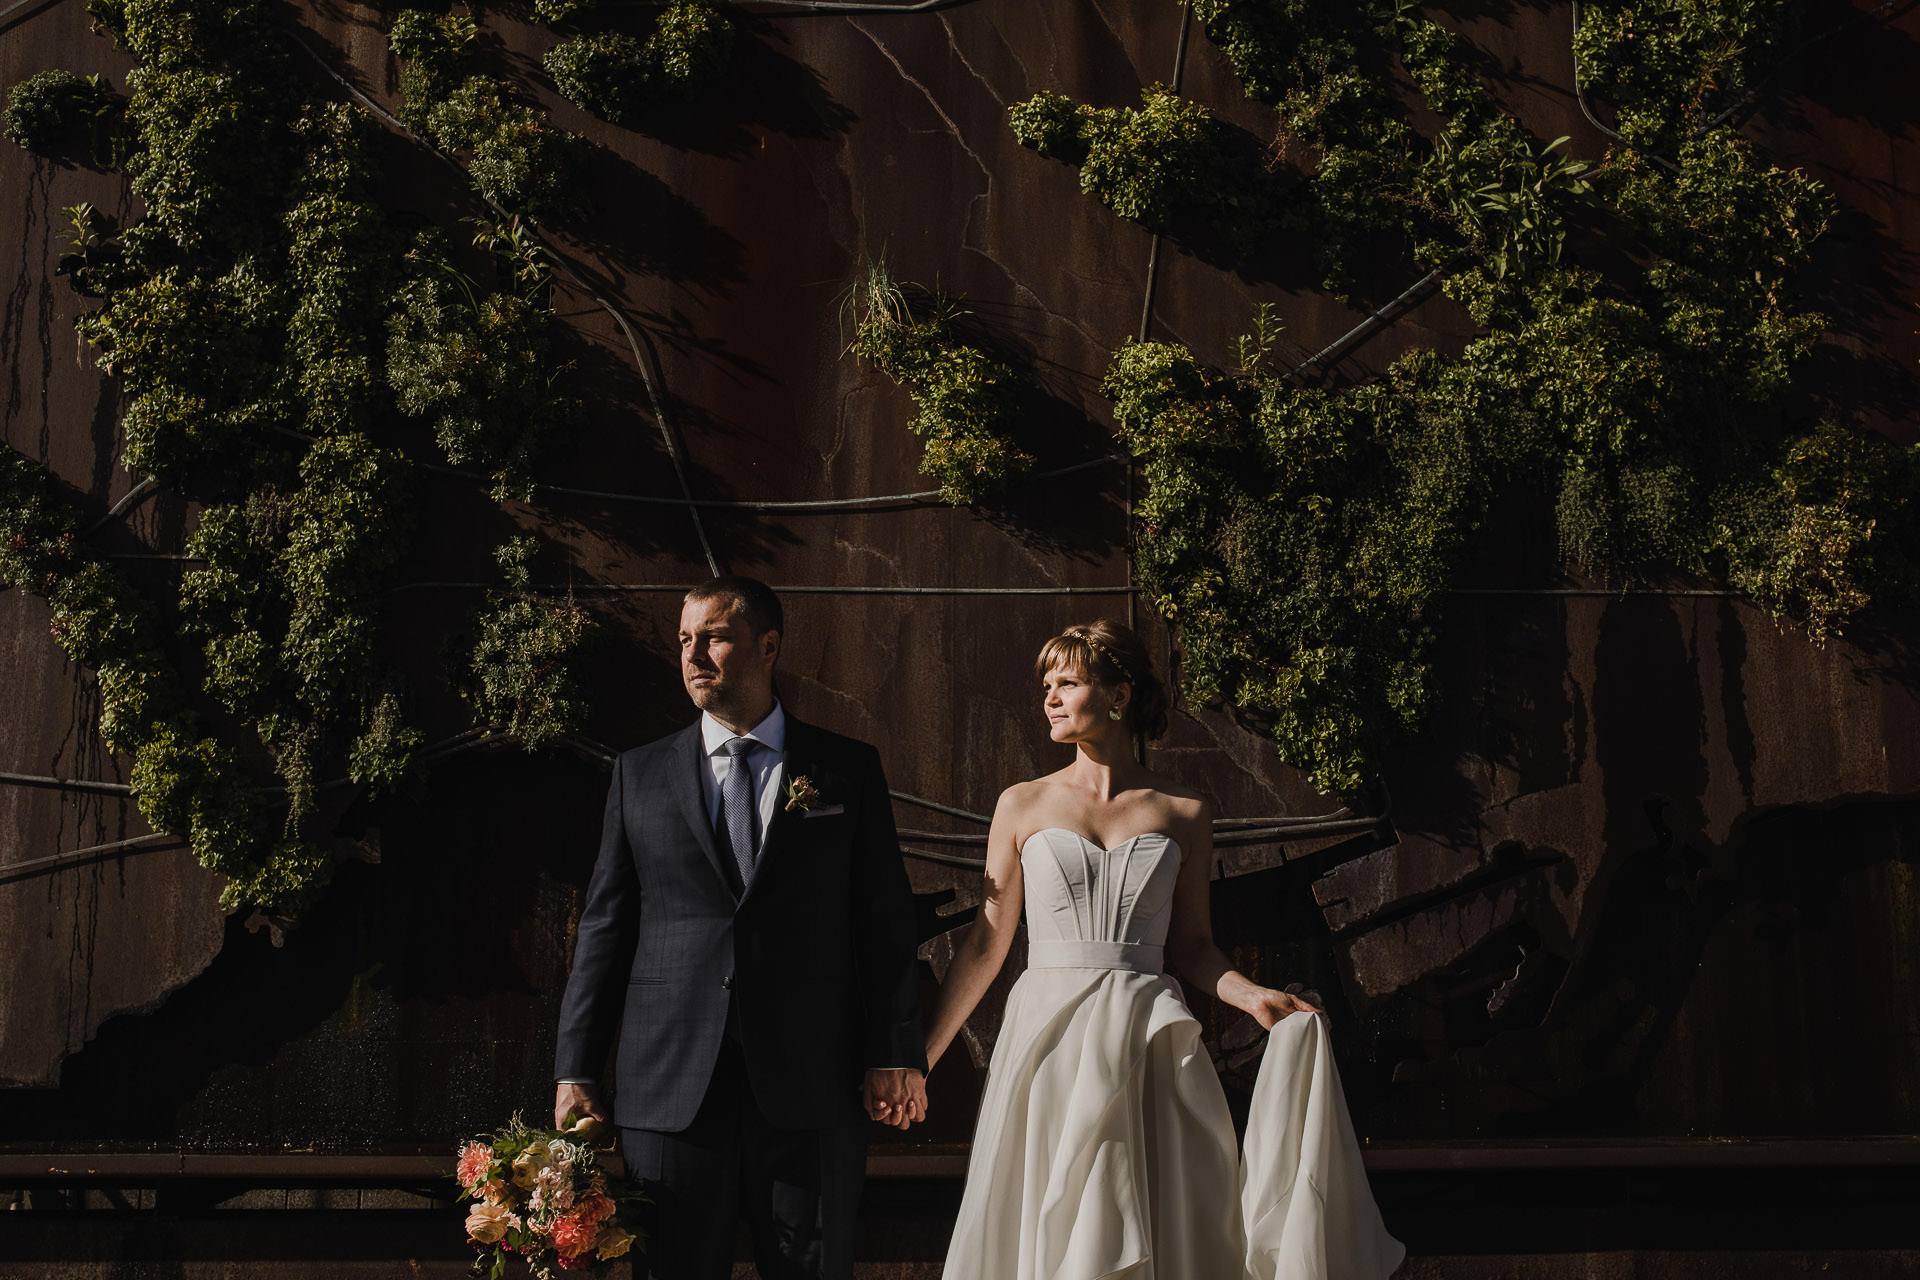 Evergreen Brickworks wedding photographer - sunset portrait with outdoor art